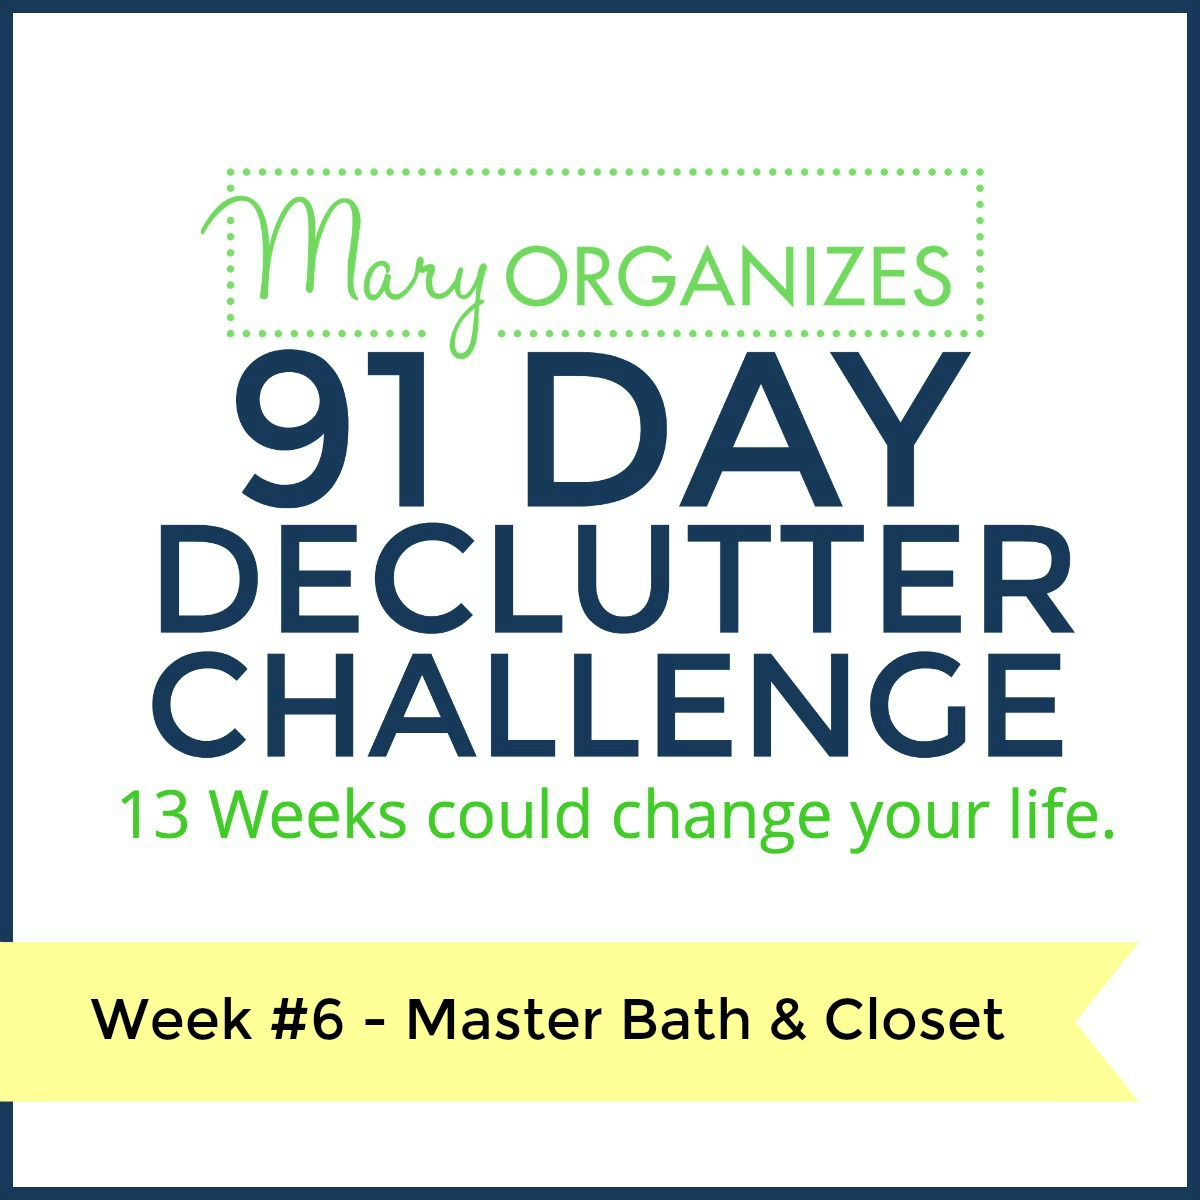 week-6-91-day-declutter-challenge-s